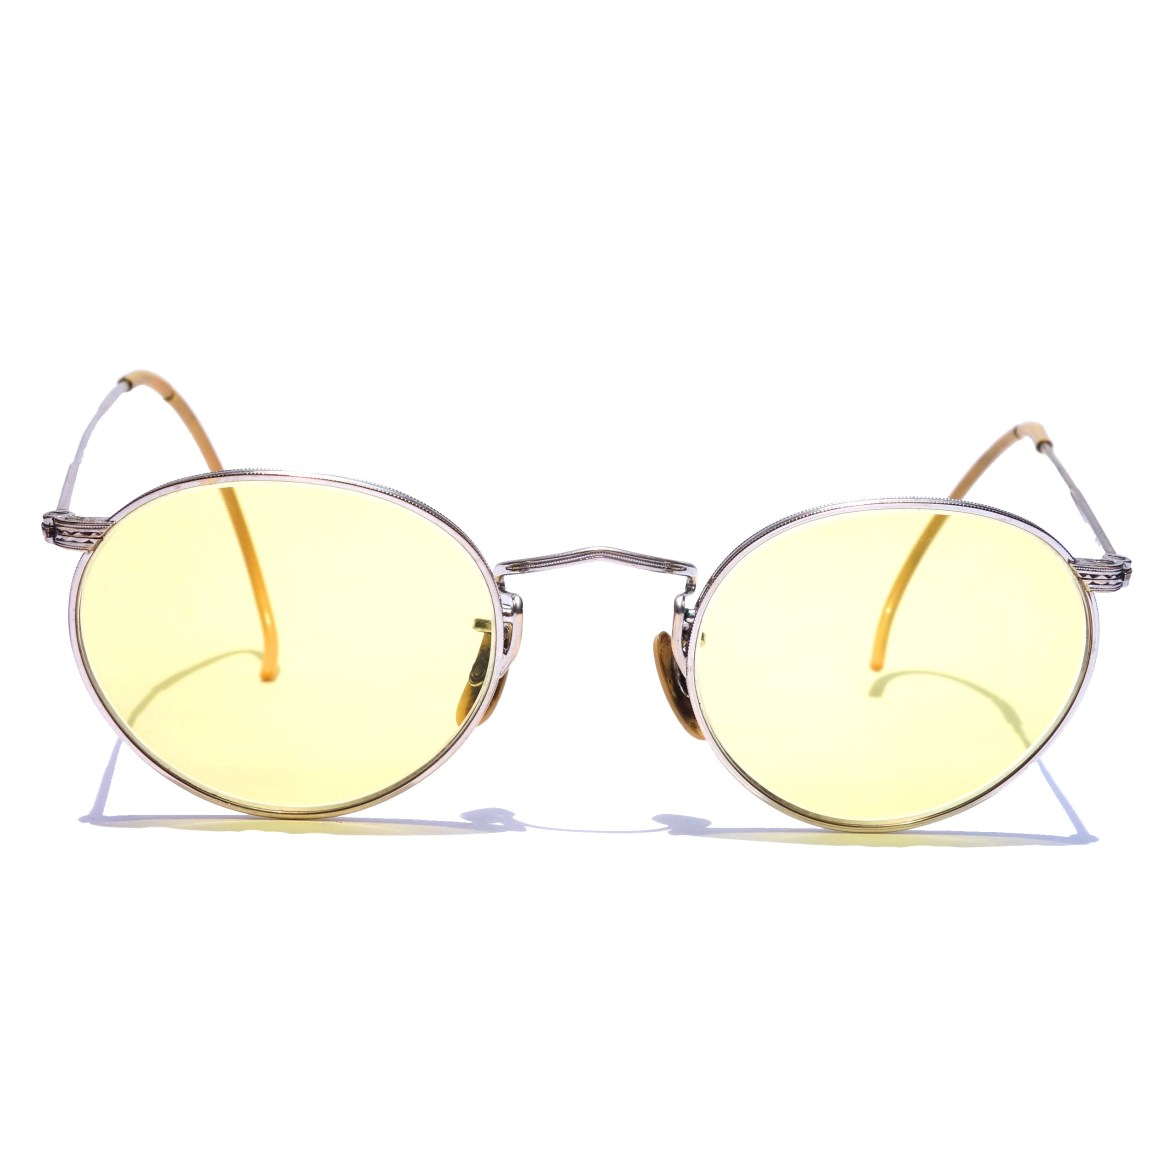 New Arrivals Vintage Glasses vintage styling blog